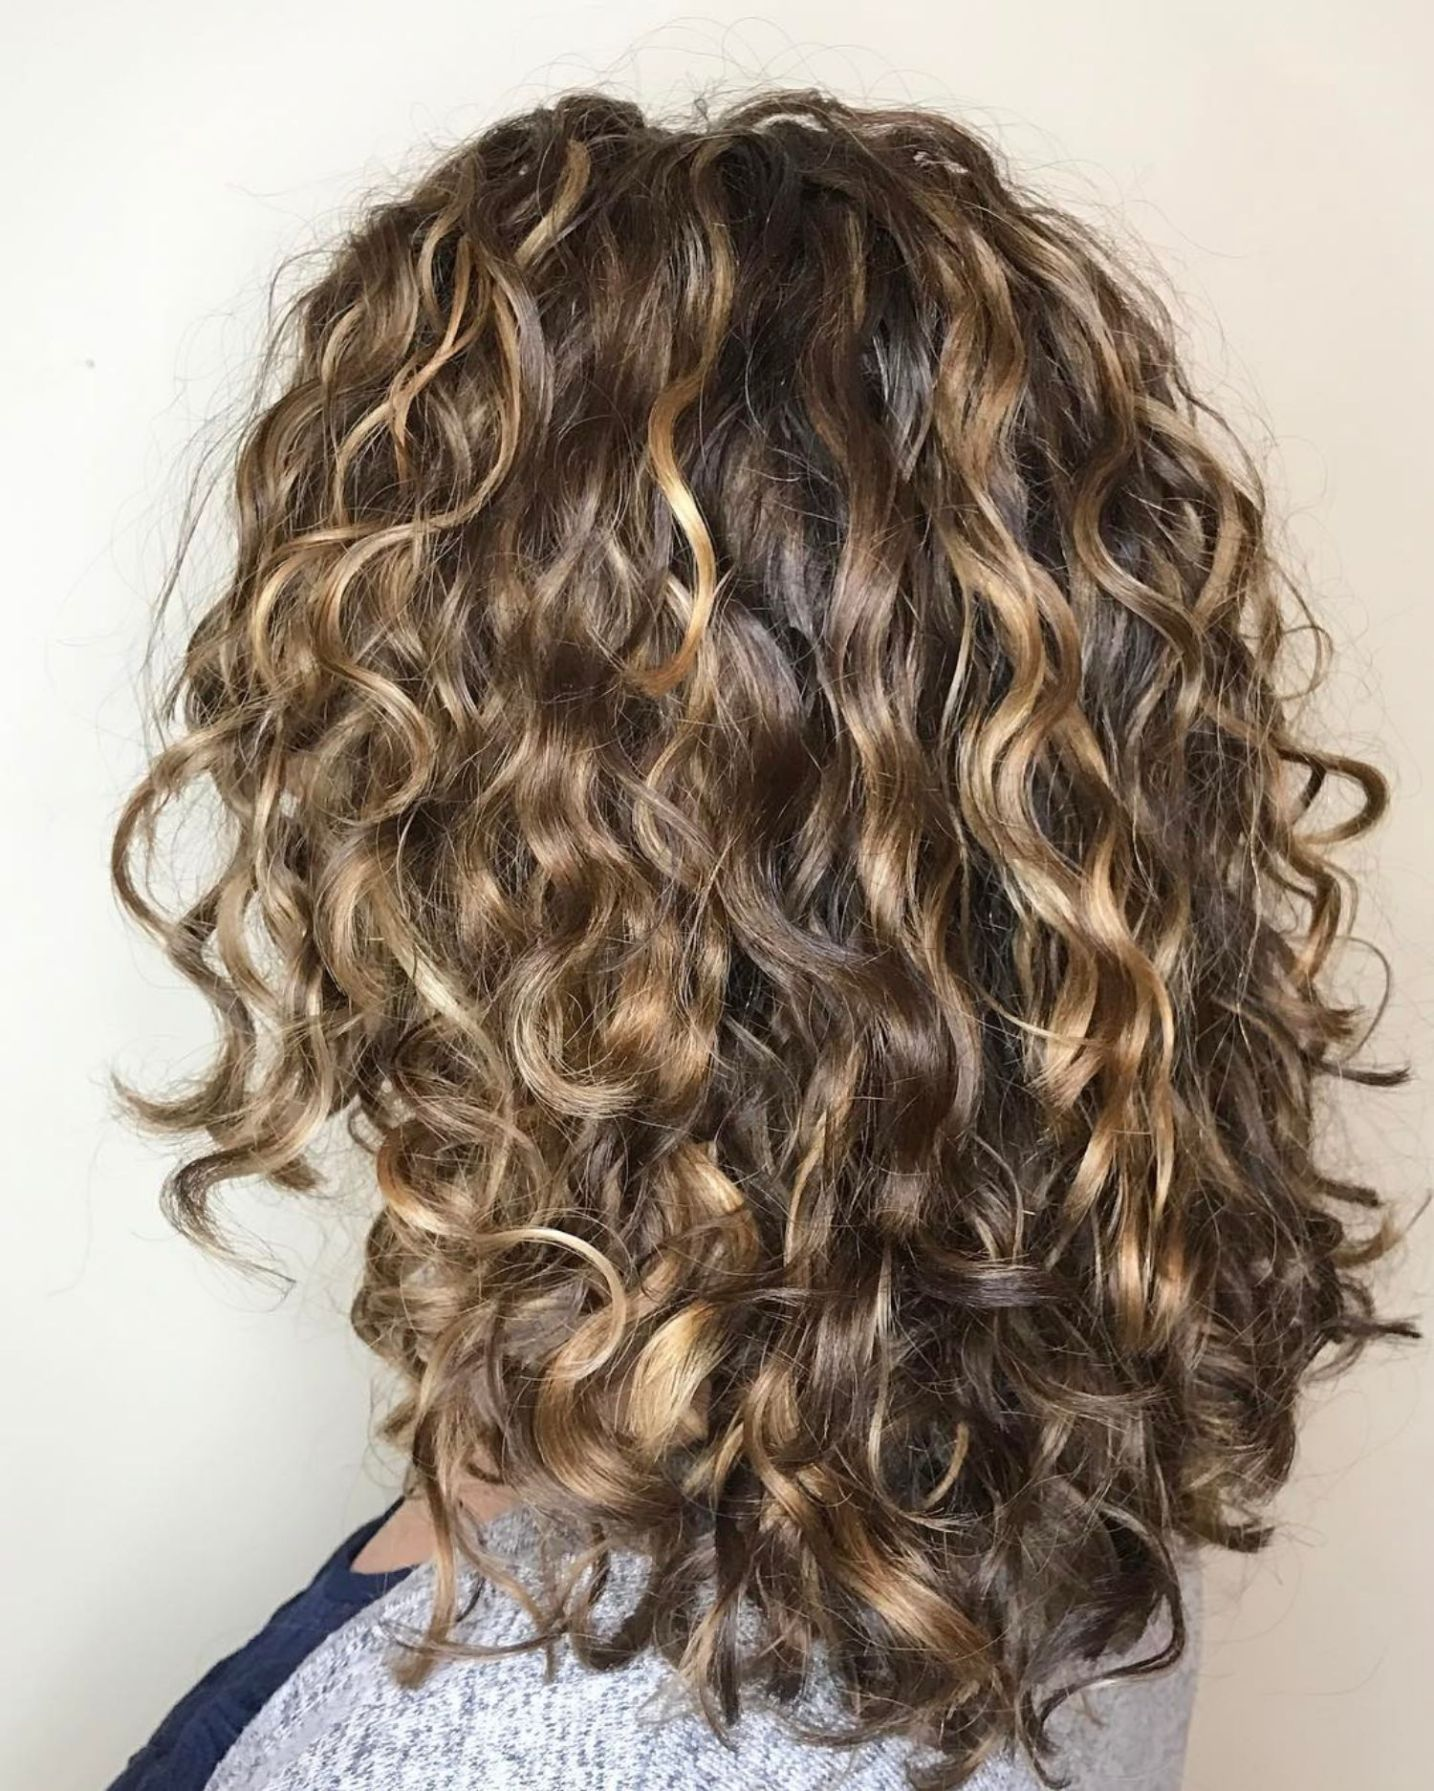 Curly Brown Hair With Dark Blonde Highlights Natural Curls Hairstyles Curly Hair Styles Naturally Curly Hair Styles